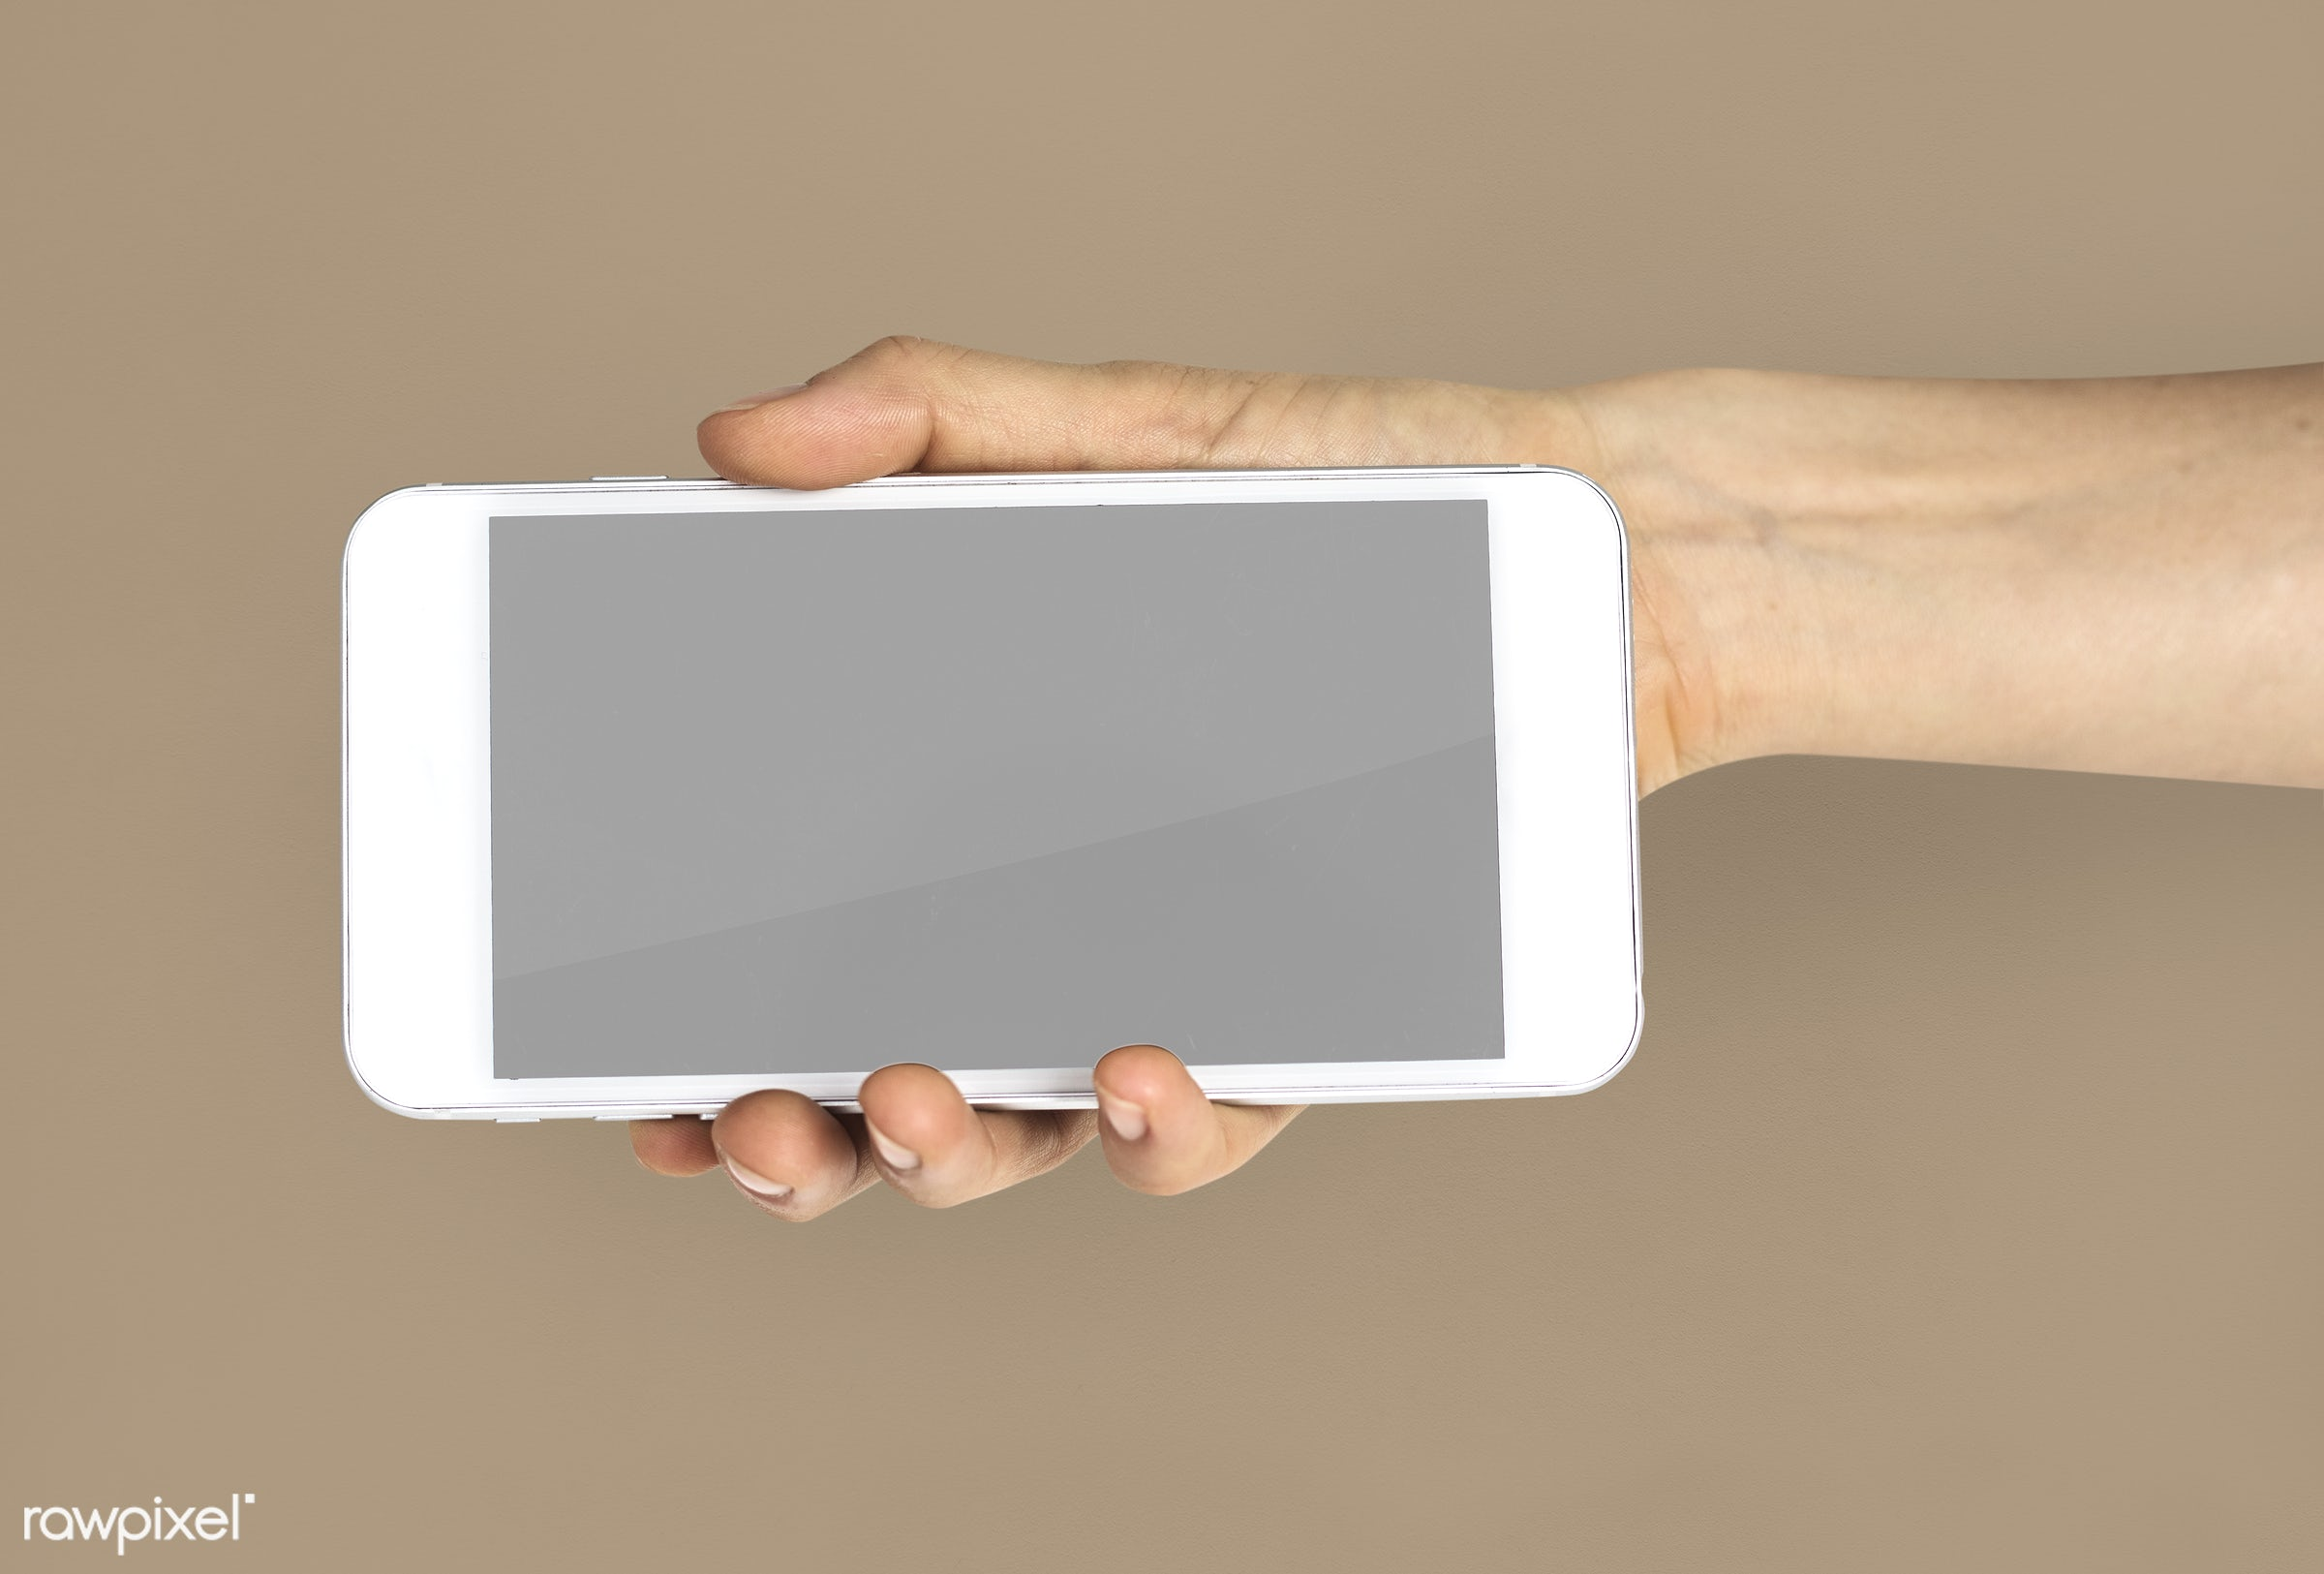 studio, call, person, phone, portable, technology, holding, object, landscape, digital, people, network, online, mobile...